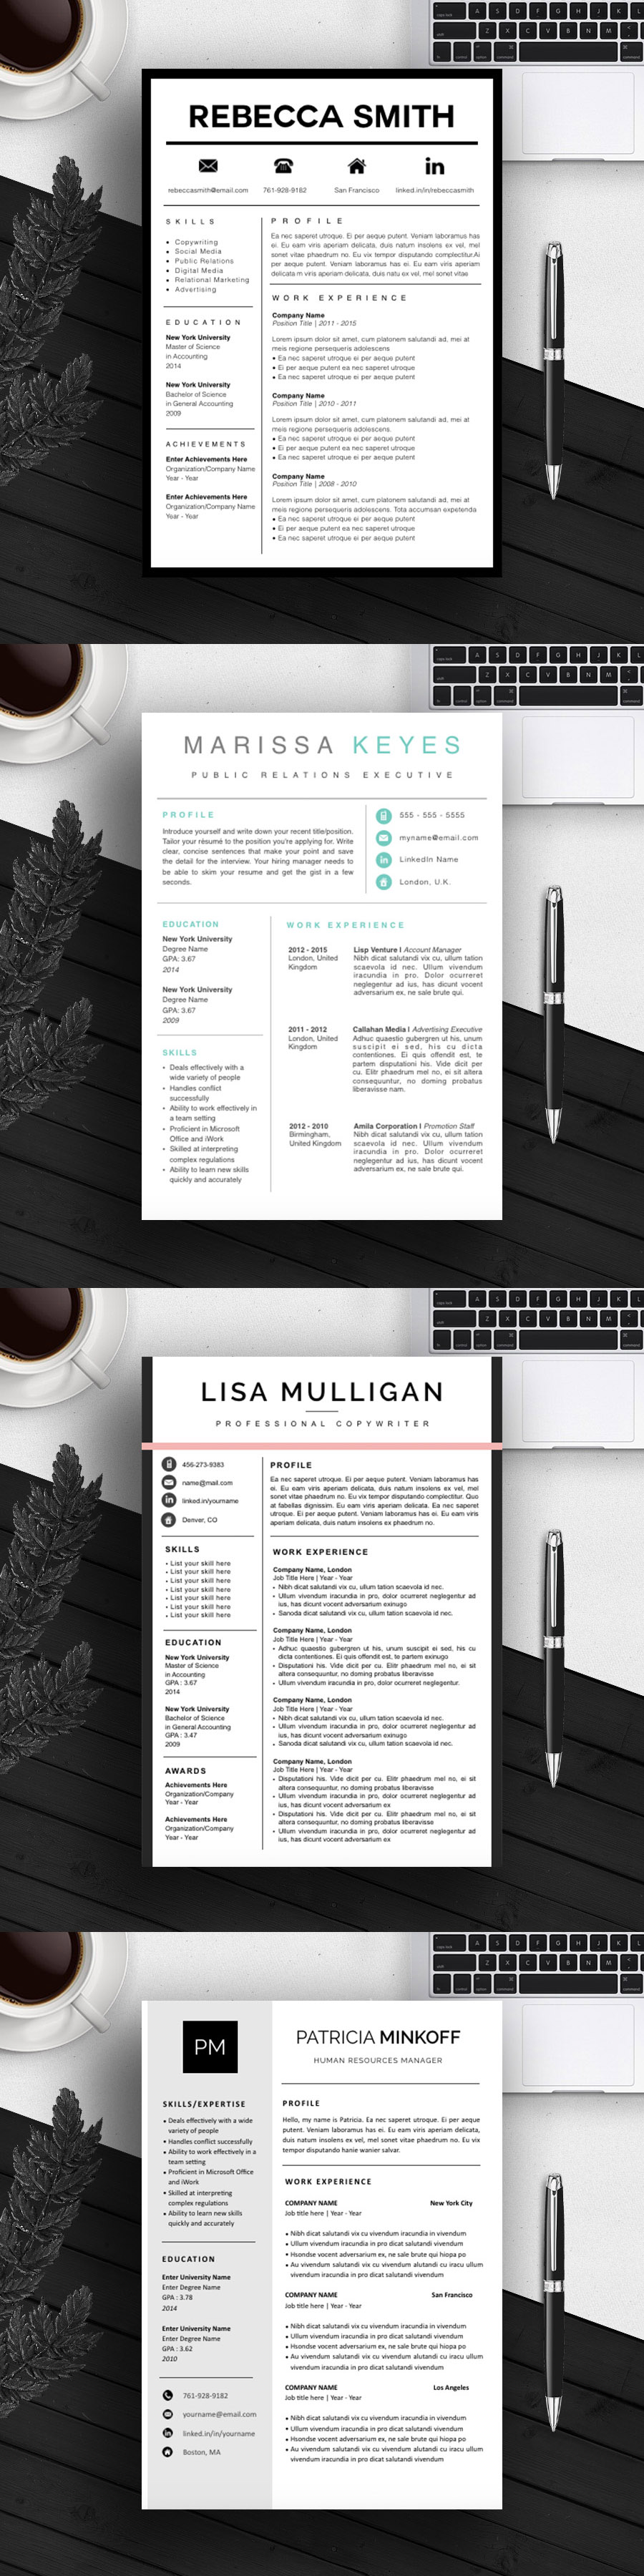 Professional and Clean / Resume CV Design / Cover Letter Template ...